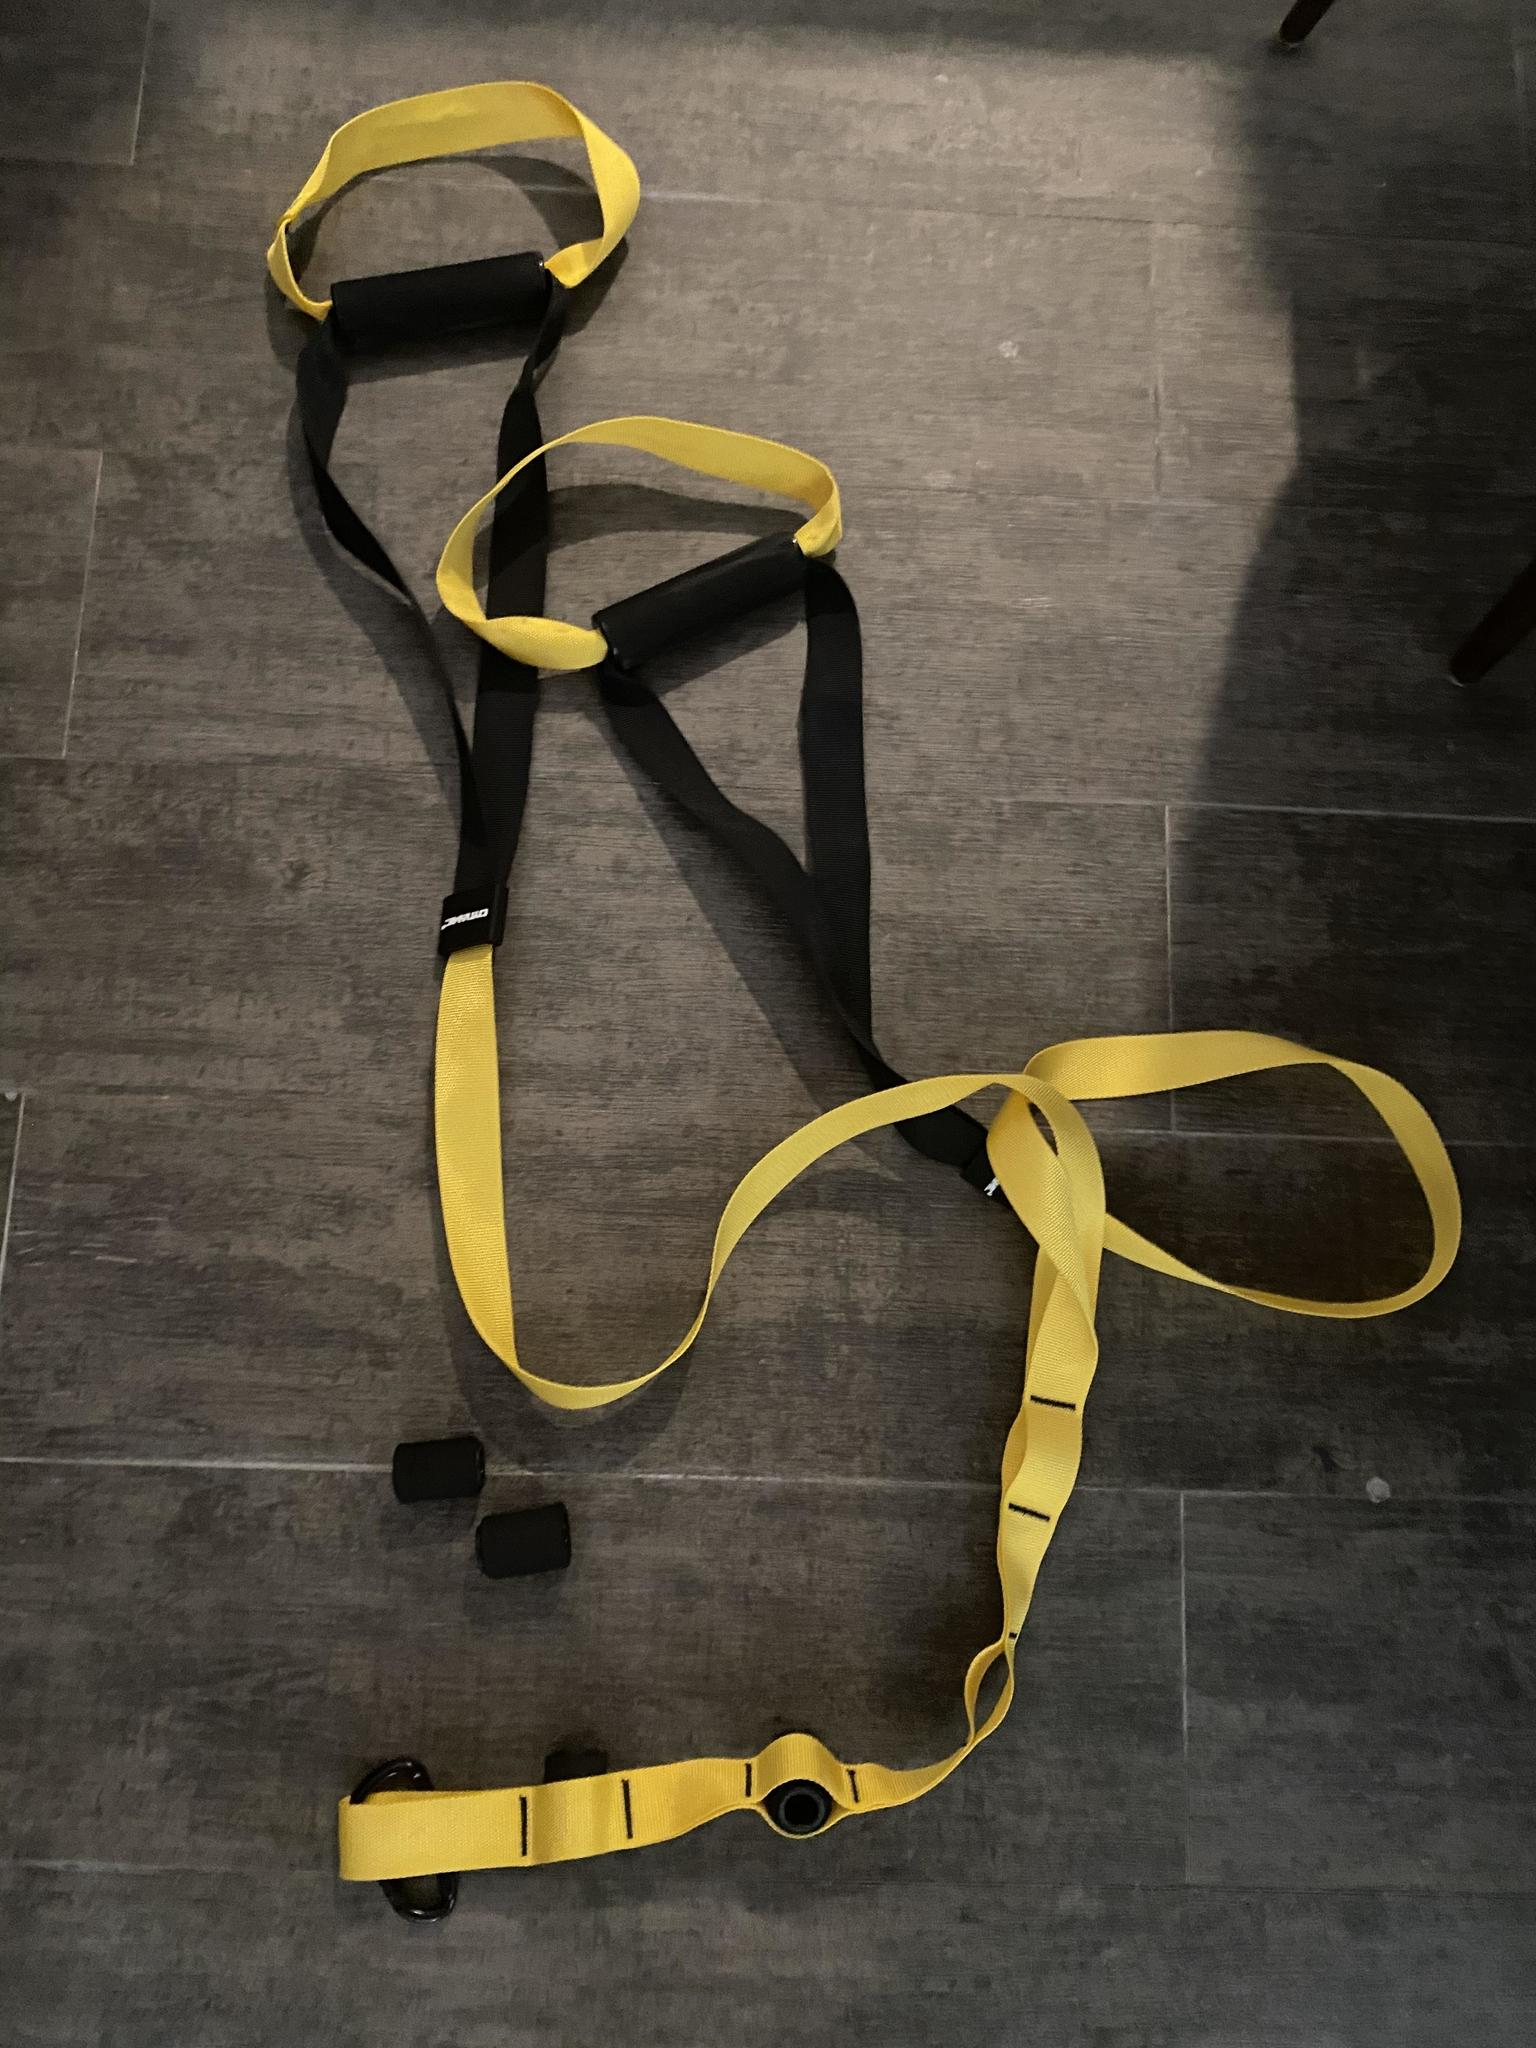 Trx suspension brand new condition for great exerc